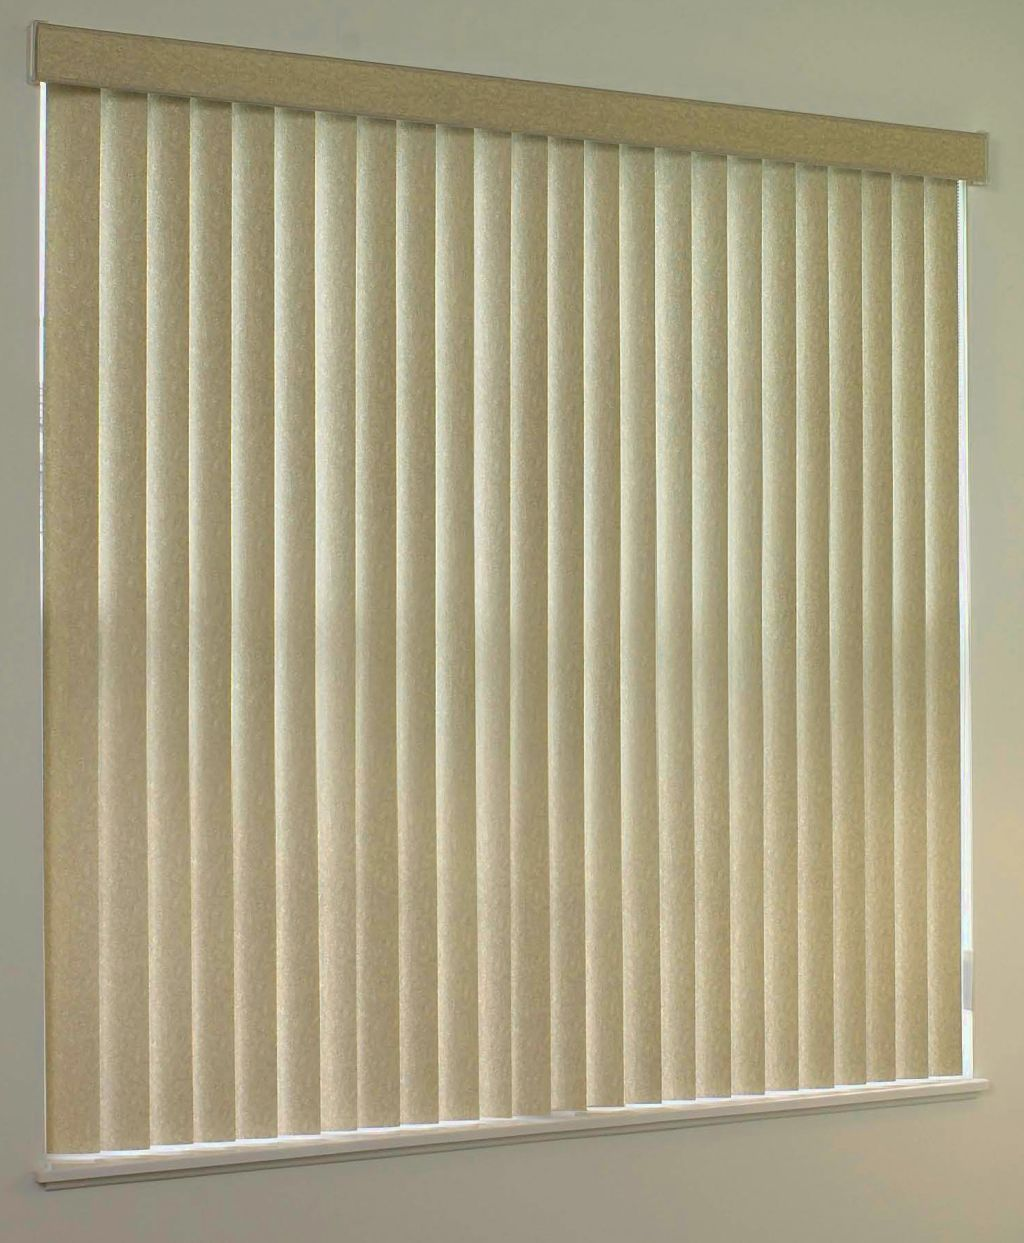 Vertical Blinds Ideas From Lowes Vertical Blinds For Windows Lowes